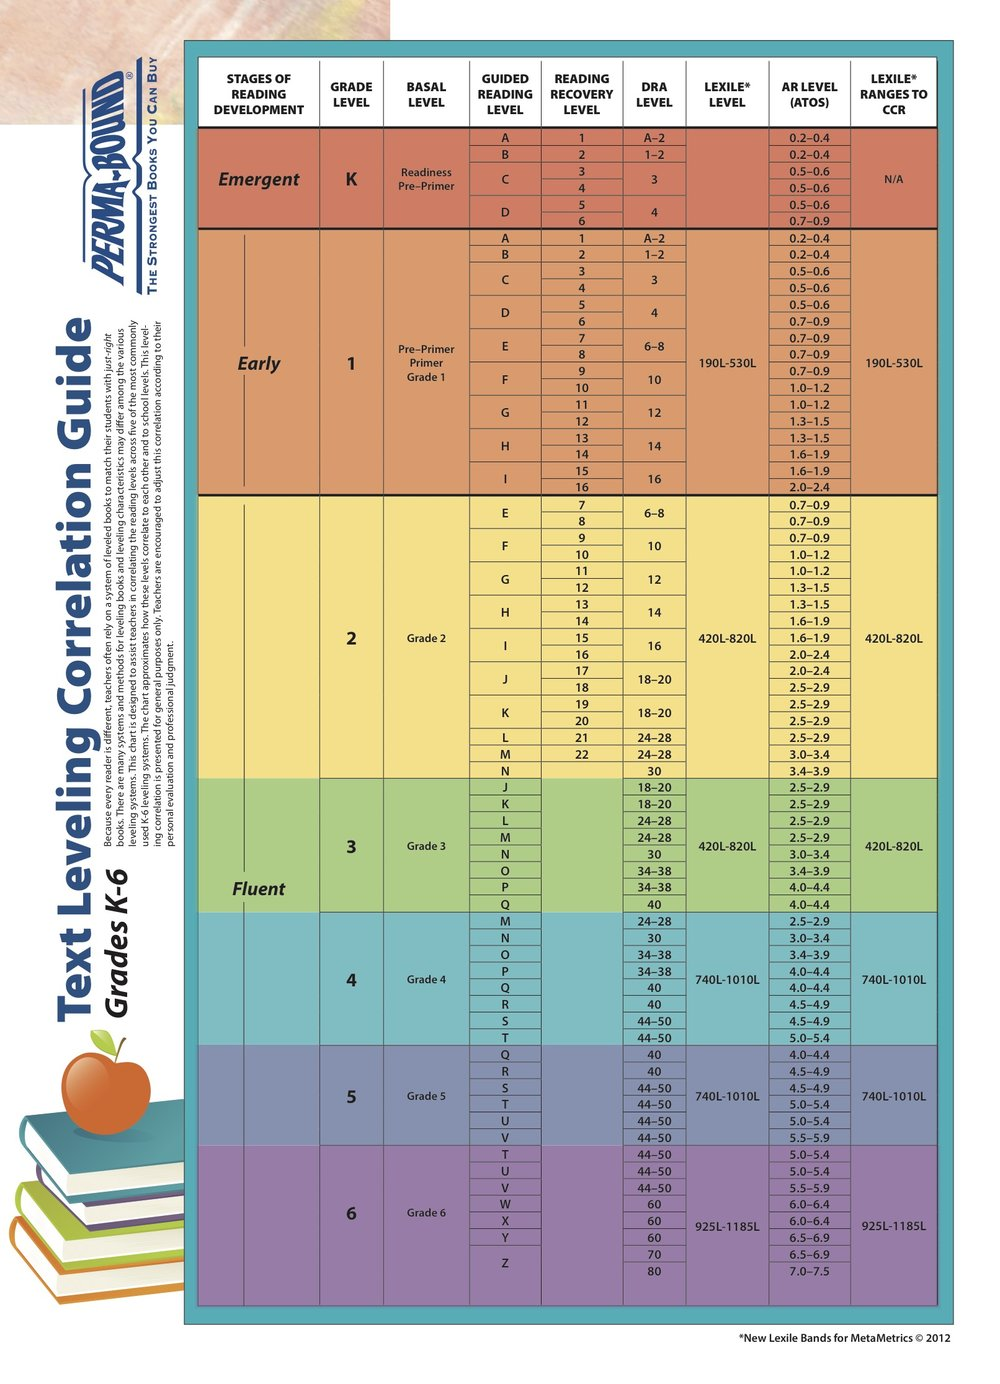 Guided Reading Level Correlation Chart